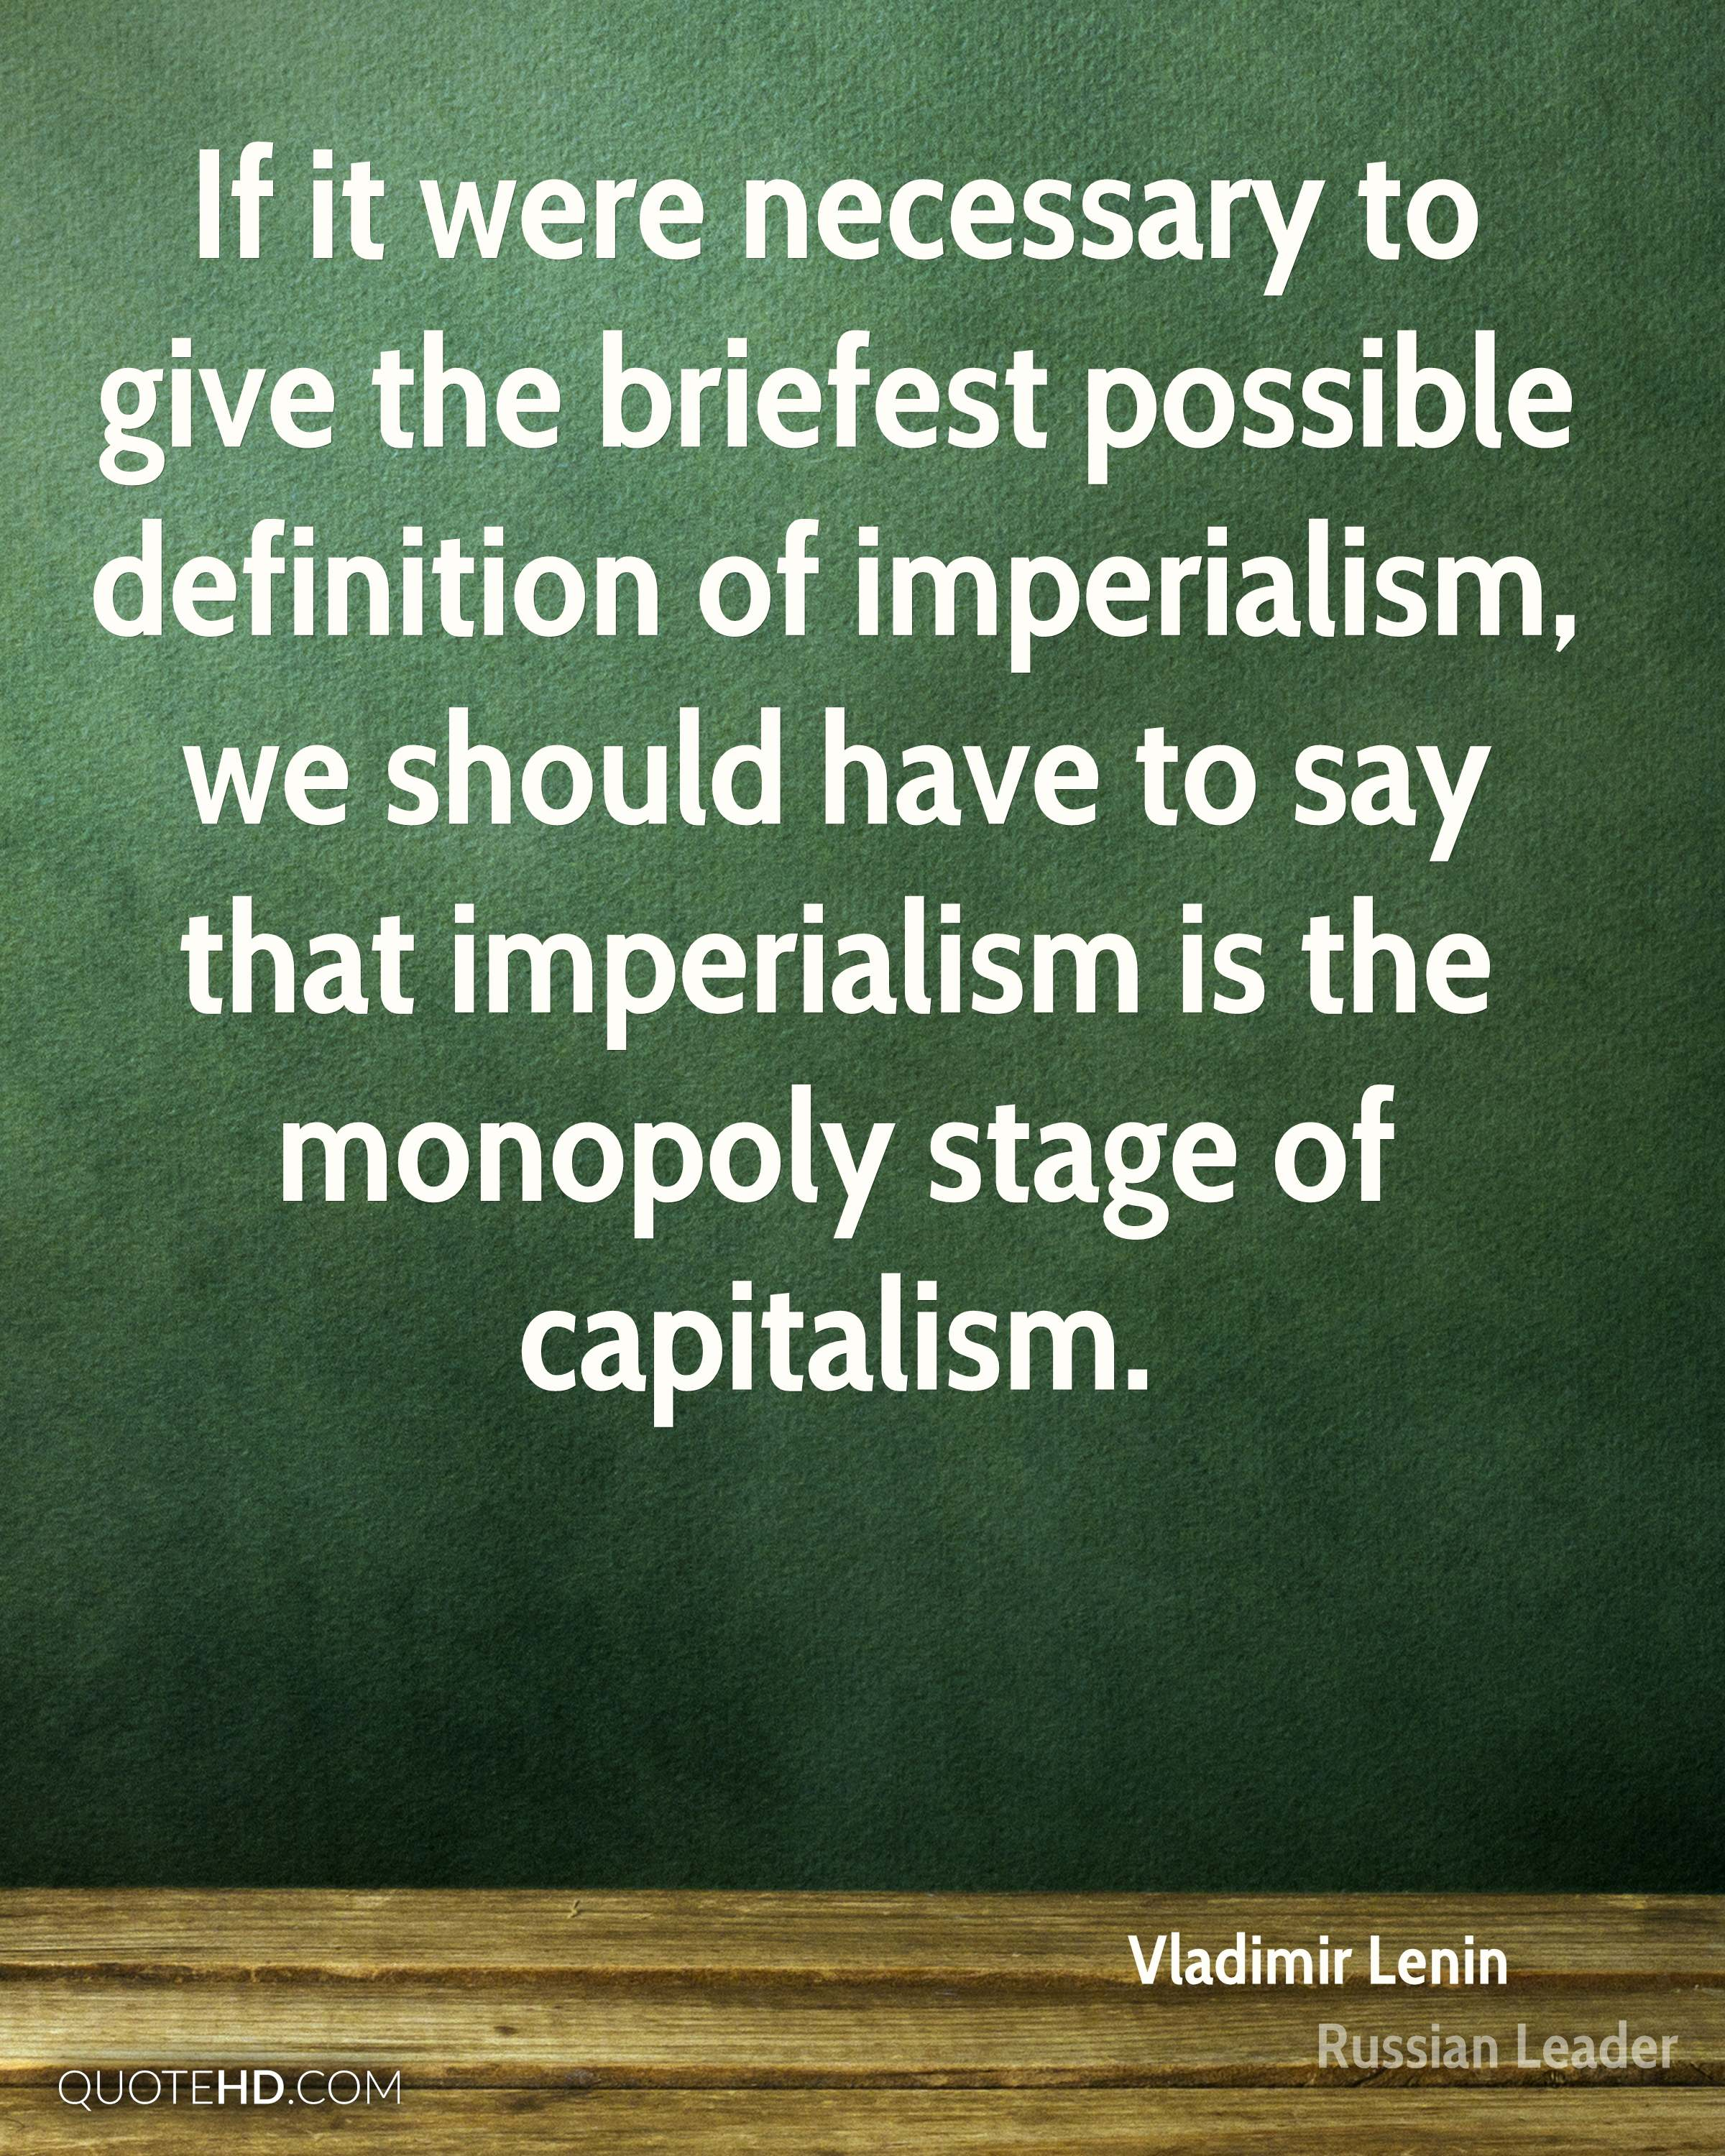 If it were necessary to give the briefest possible definition of imperialism, we should have to say that imperialism is the monopoly stage of capitalism.